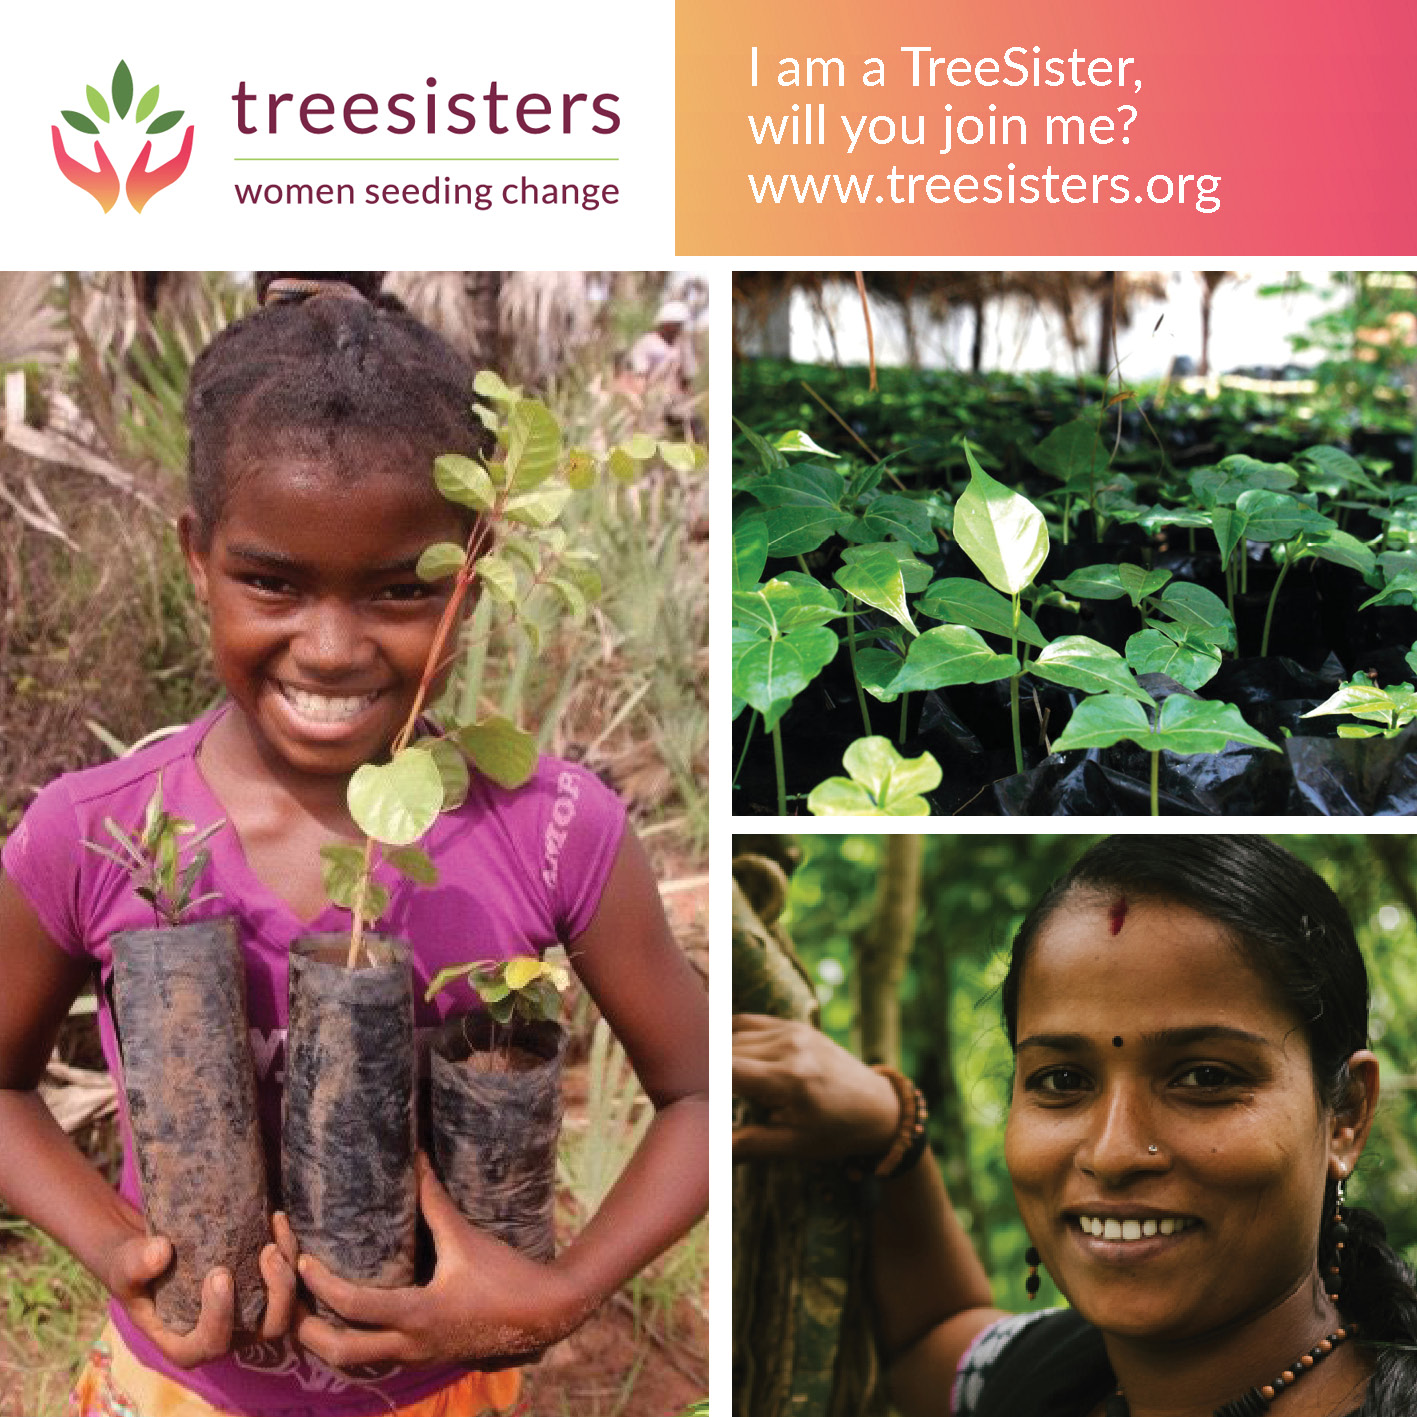 - Imagine a reforestation revolution ignited by the shared creativity and courage of a global network of millions of women.TreeSisters is a non-profit organisation aiming to radically accelerate tropical reforestation by engaging the unique feminine consciousness, gifts and leadership of women everywhere and focusing it towards global action.TreeSisters are planting over a million trees a year, and they are now calling for women to plant a billion trees a year, by becoming a treesister and contributing monthly to tropical reforestation. www.TreeSisters.org